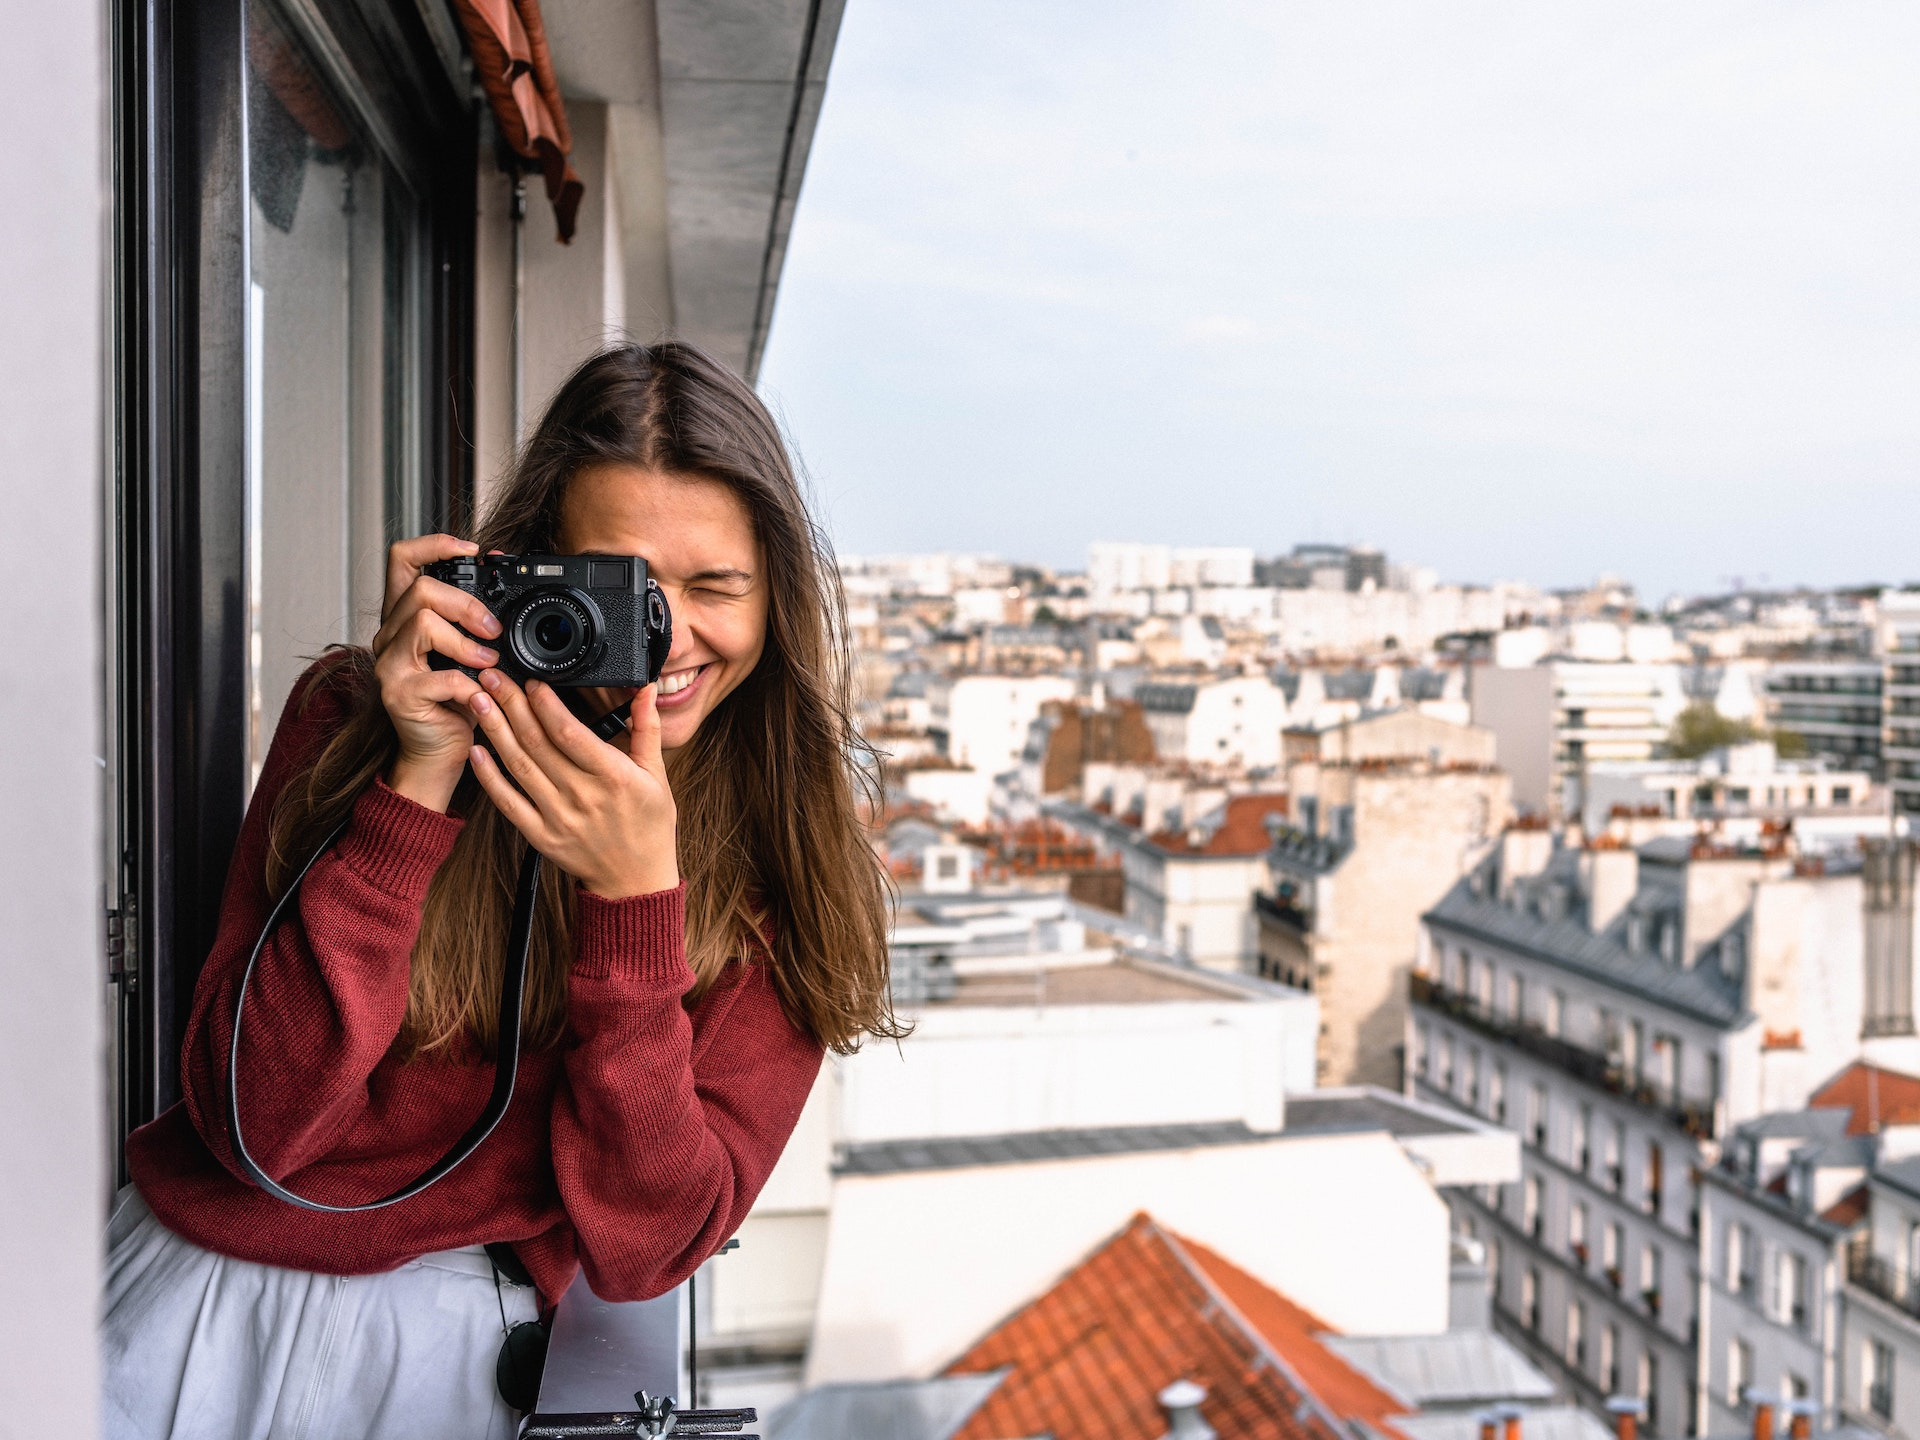 Work From Home Jobs For Women: Become a Freelance Photographer